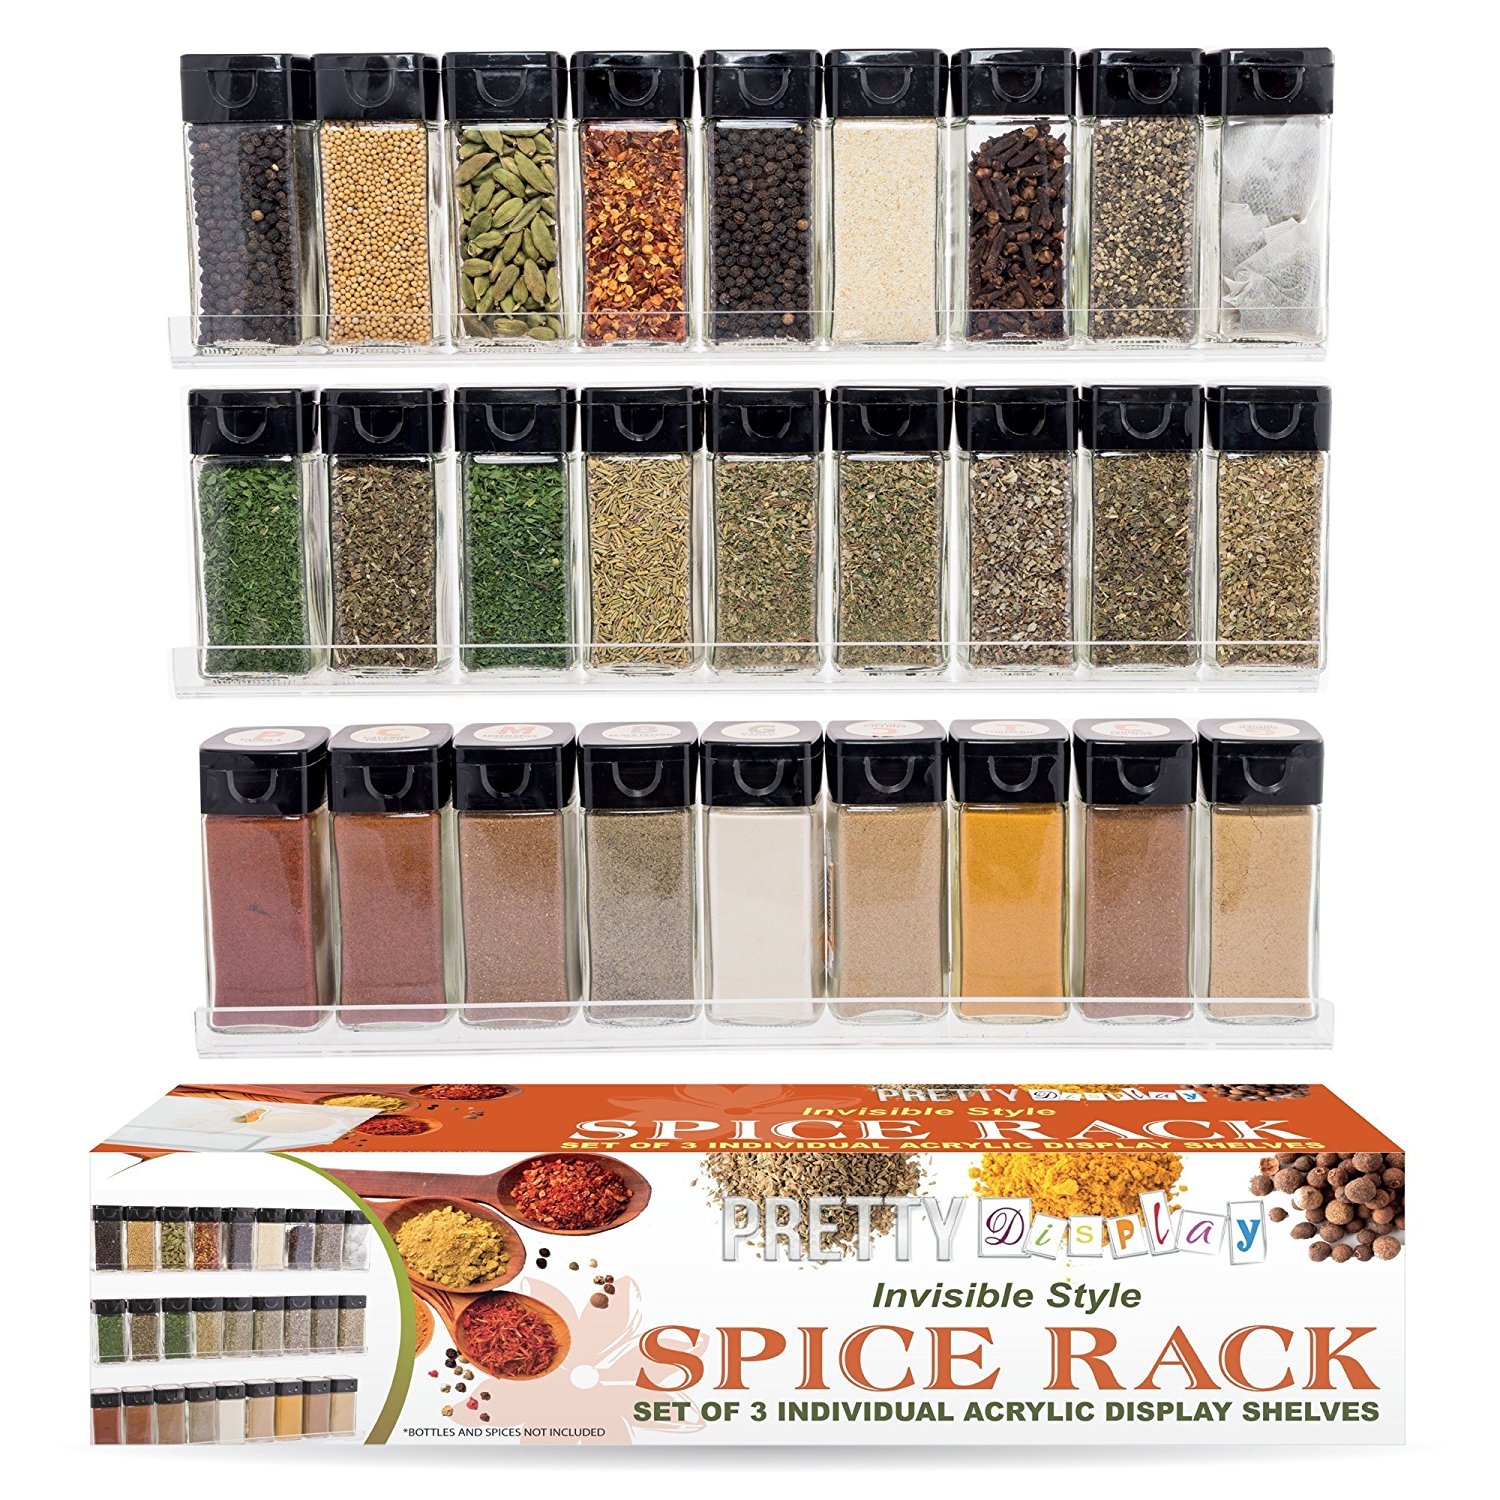 Invisible Style Spice Rack